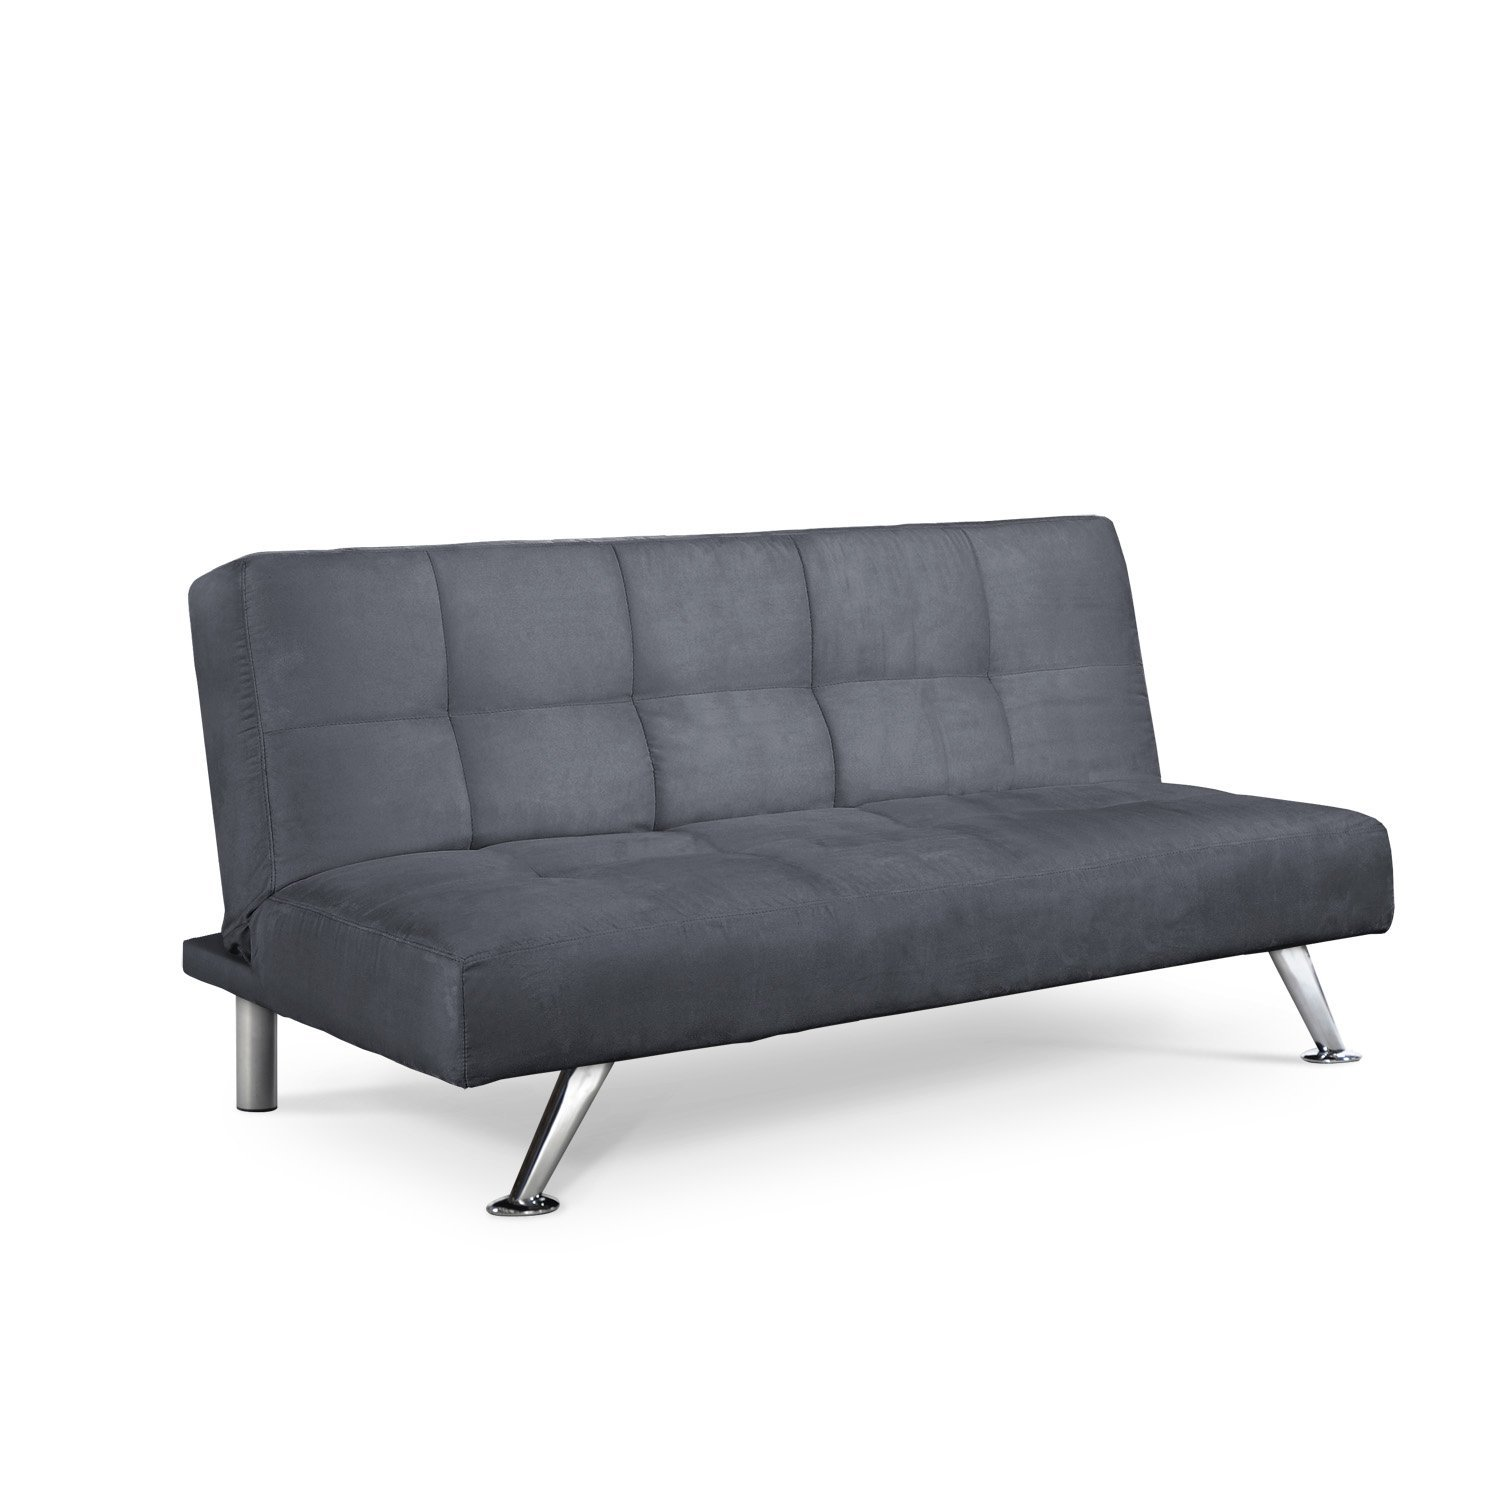 Serta Dream Convertible Maxwell Sofa